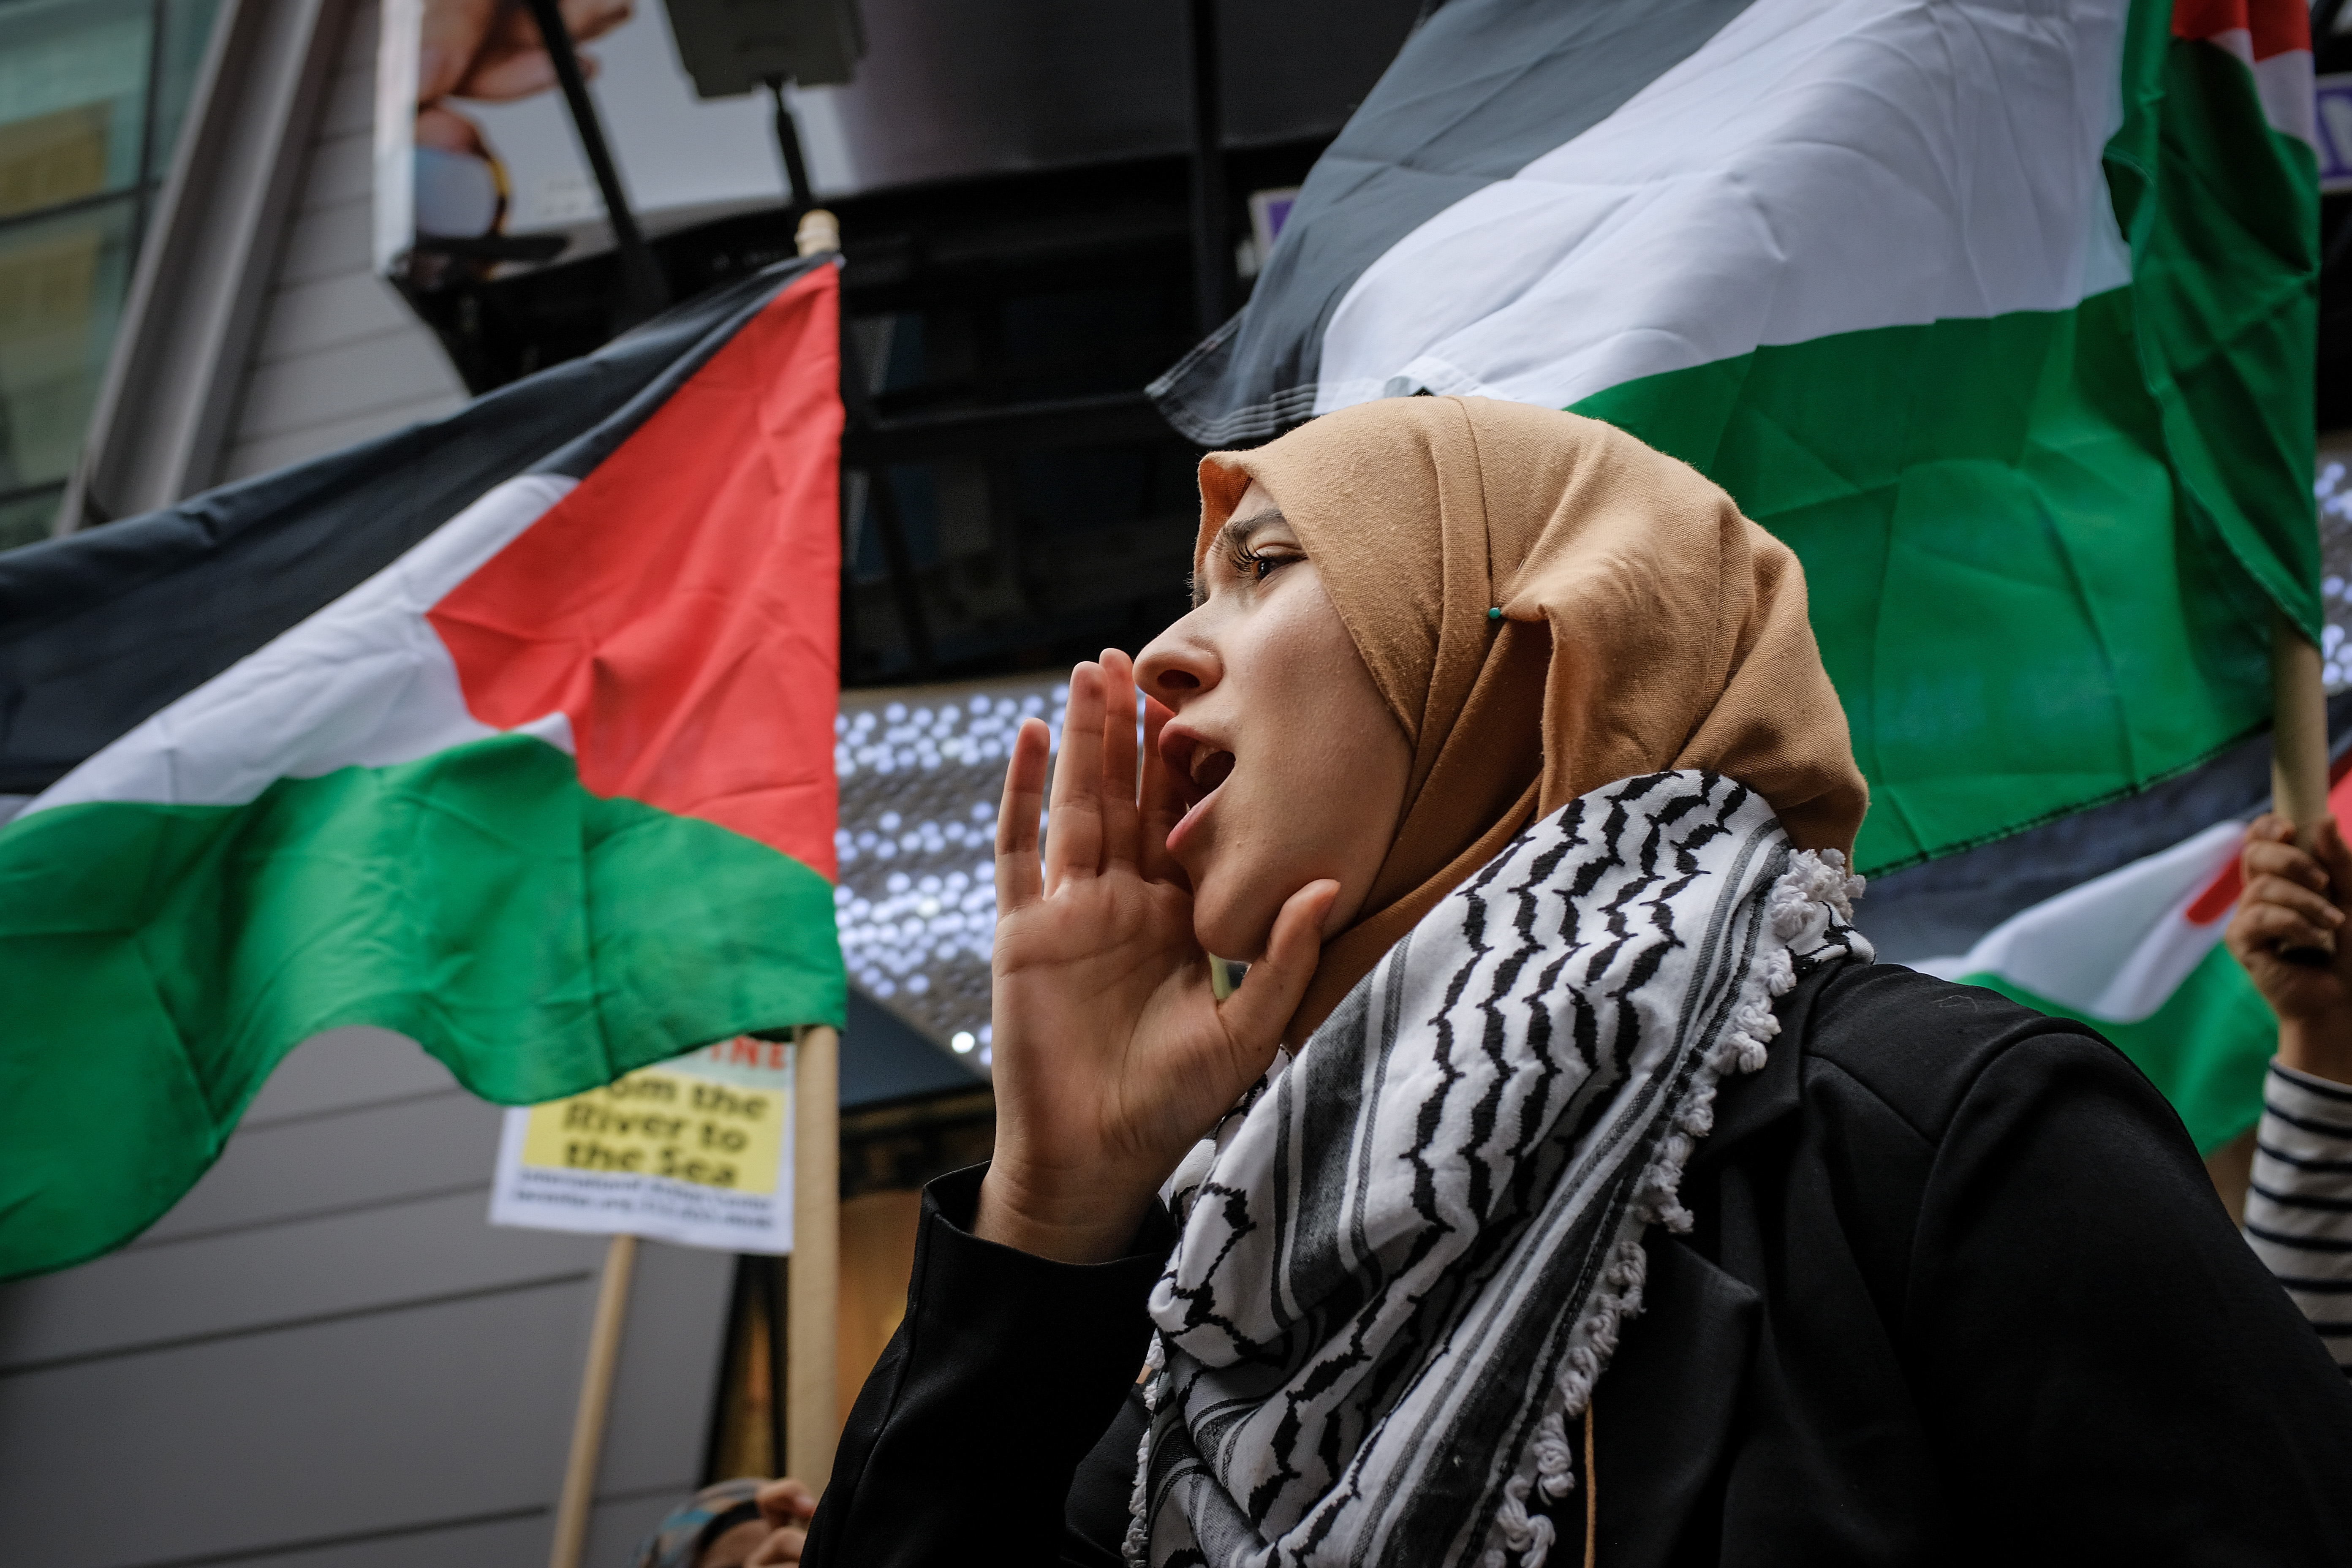 NEW YORK, NY: Members of the Palestinian community, fellow Muslims and their supporters rally in support of the Palestinian people during a rally in Times Square on May 18, 2018.